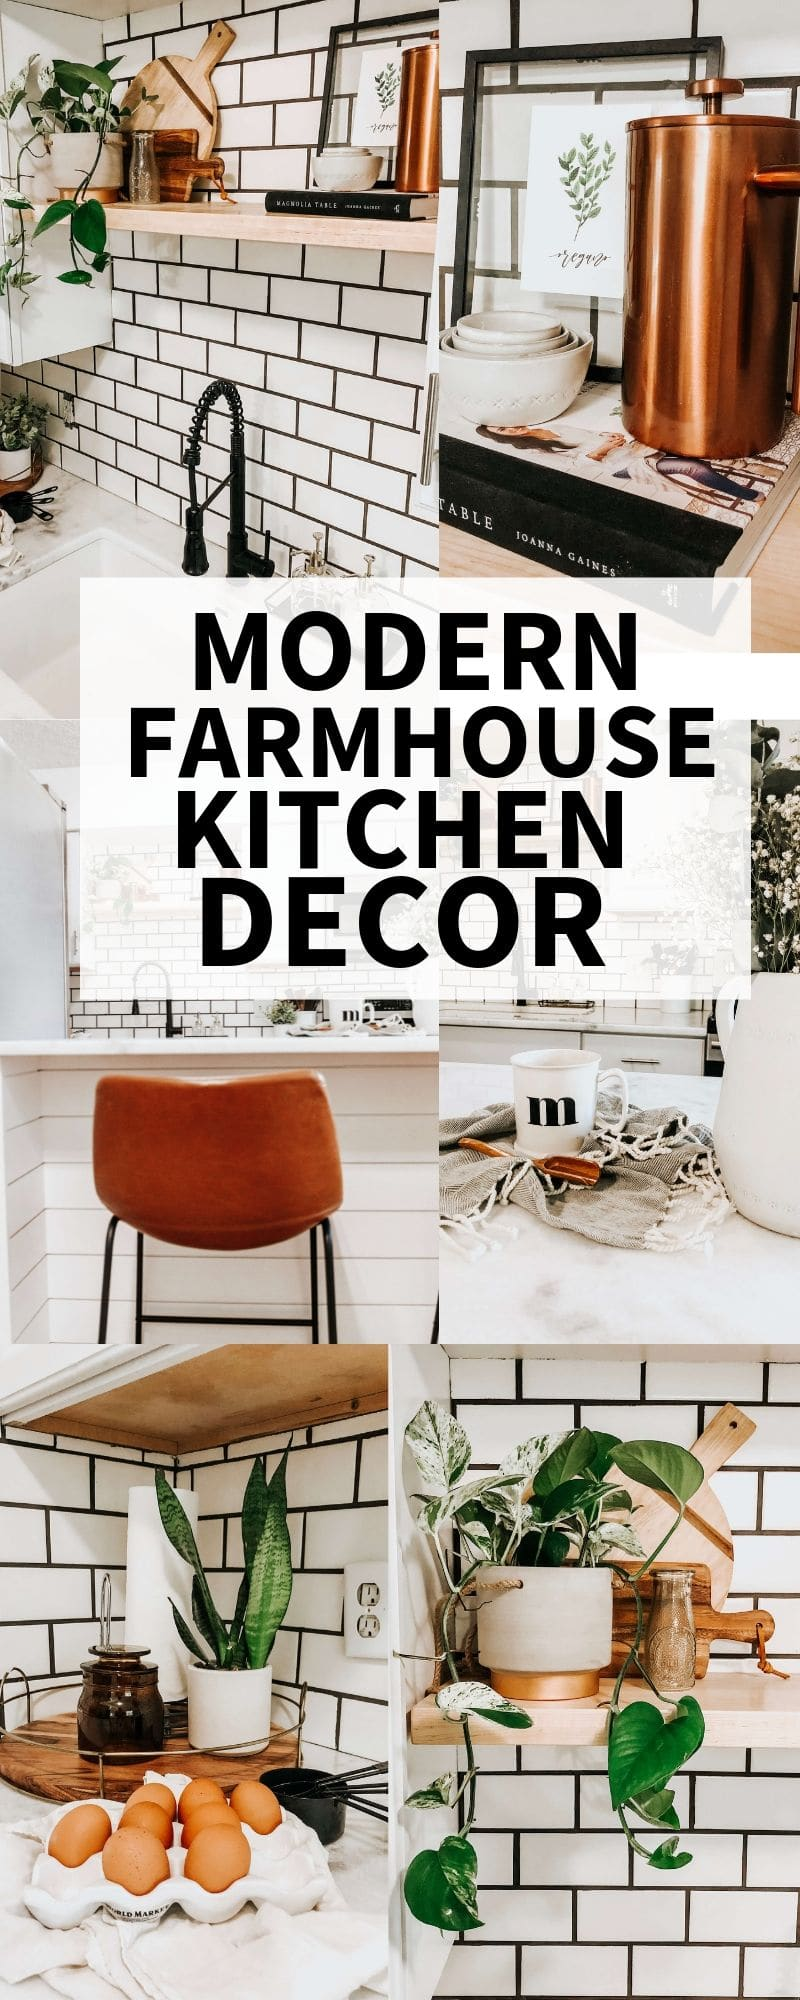 modern farmhouse kitchen decor ideas